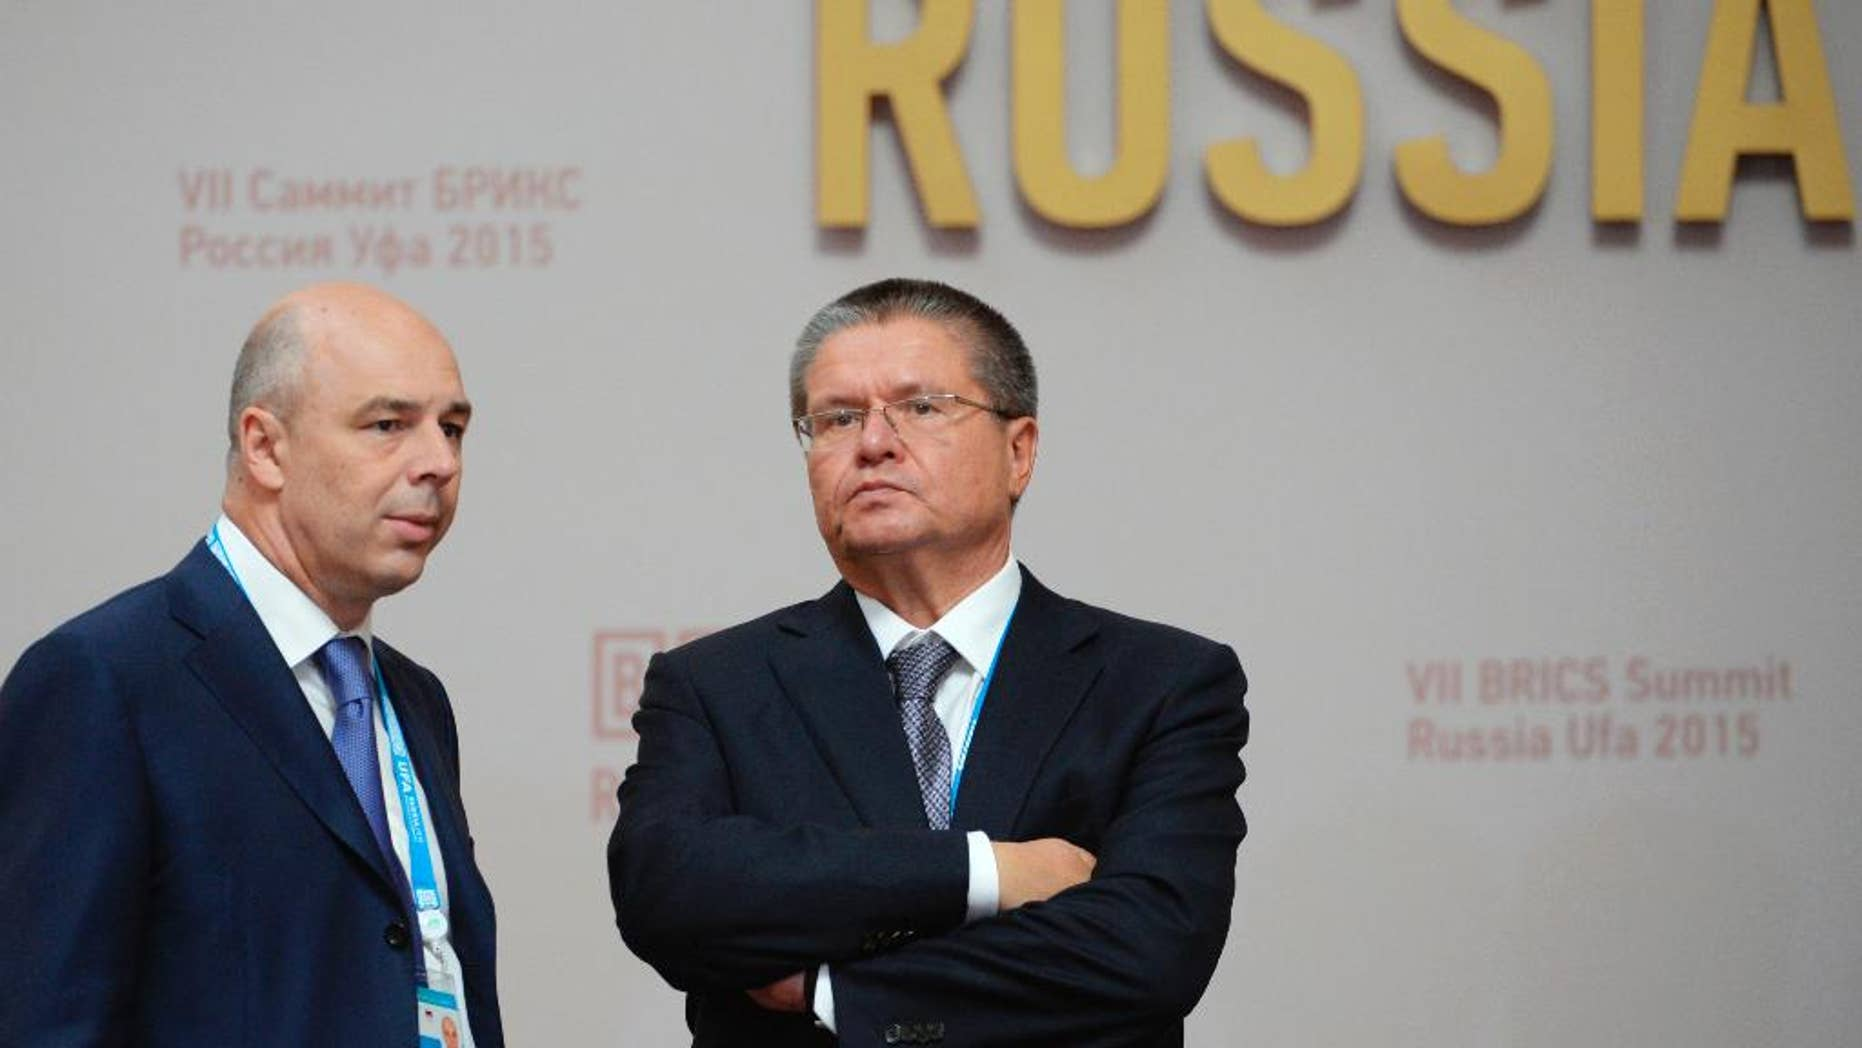 FILE - In this file photo taken on Thursday, July 9, 2015, Anton Siluanov, left, Minister of Finance of the Russian Federation, and Alexey Ulyukayev, Minister of Economic Development of the Russian Federation speak in Ufa, Russia. A long-serving Russian minister has been detained over an alleged $2 million bribe, the most senior government official to face corruption charges in a quarter-century. (Government Pool Photo via AP, File)